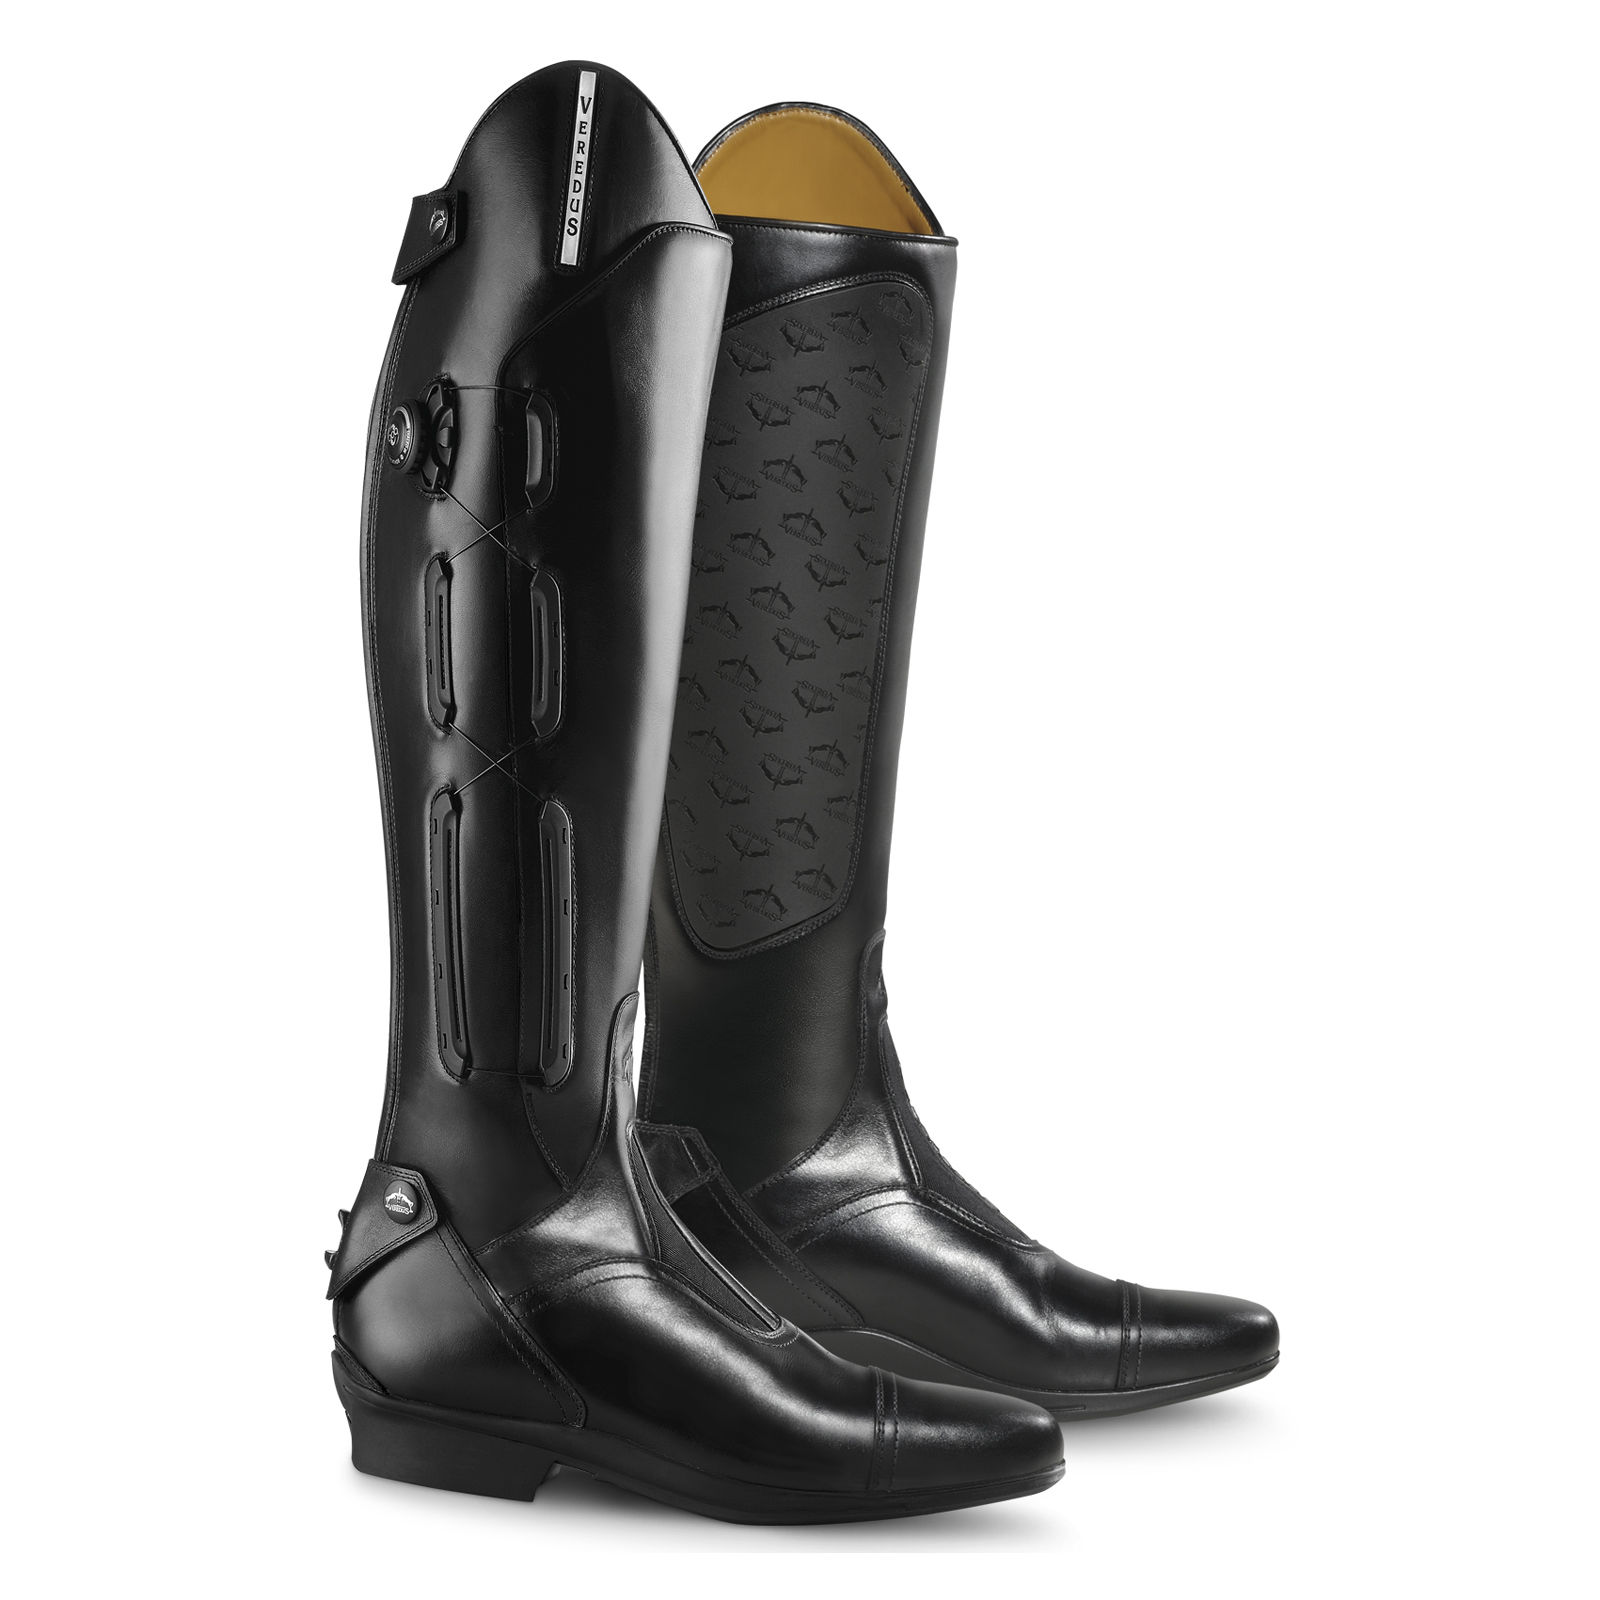 Veredus - GUARNIERI Long Riding Boot